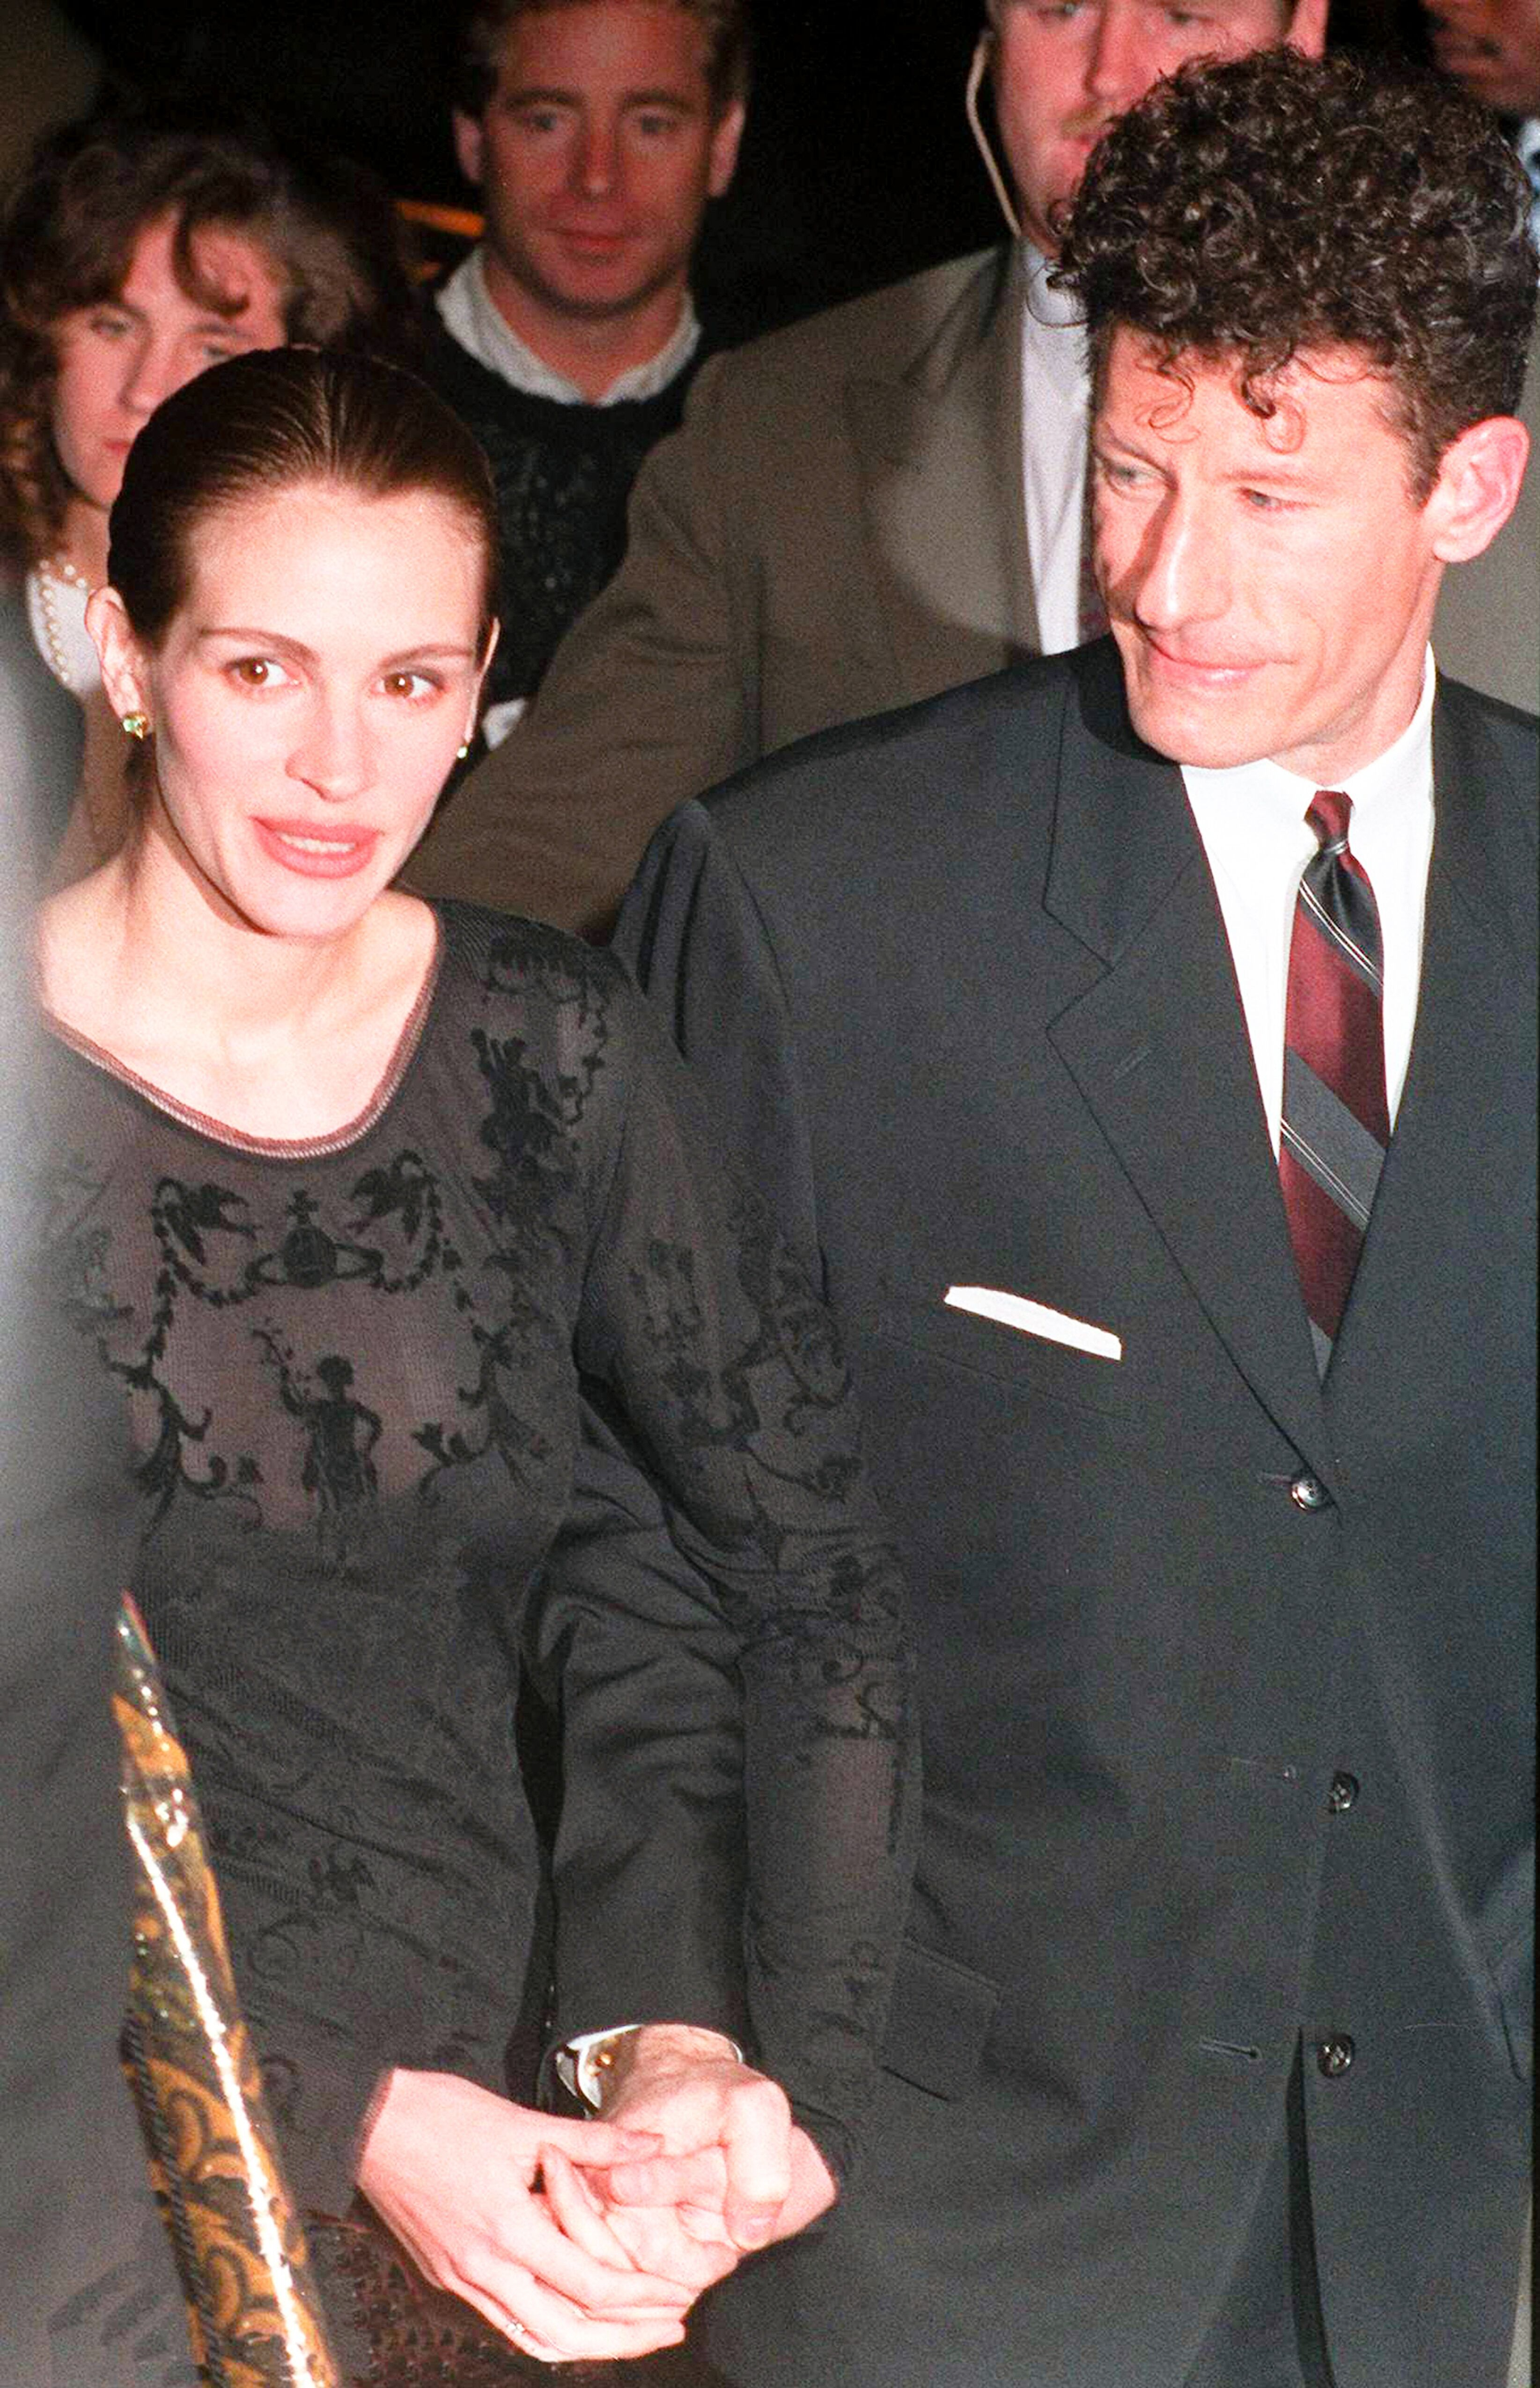 Julia Roberts with her husband, country singer and songwriter Lyle Lovett, circa 1993. | Source: Getty Images